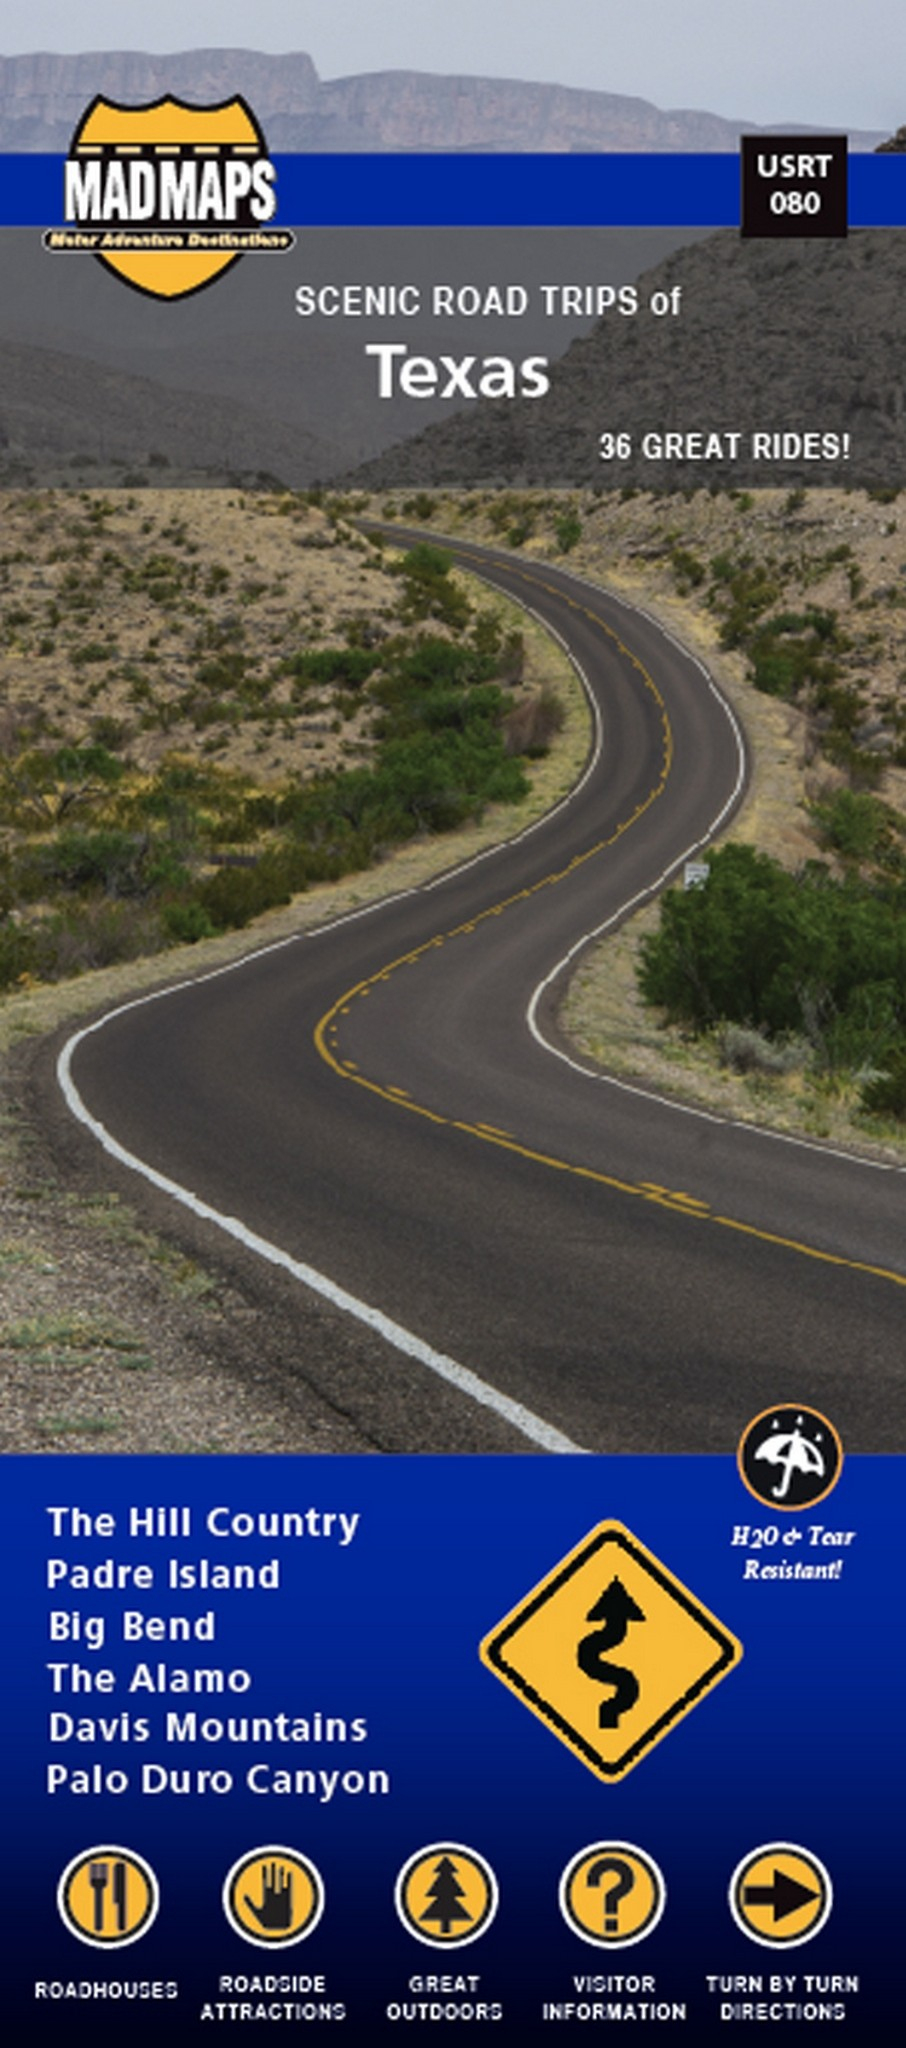 Texas Scenic Road Trips - Maps - Roadside Attractions Texas Map